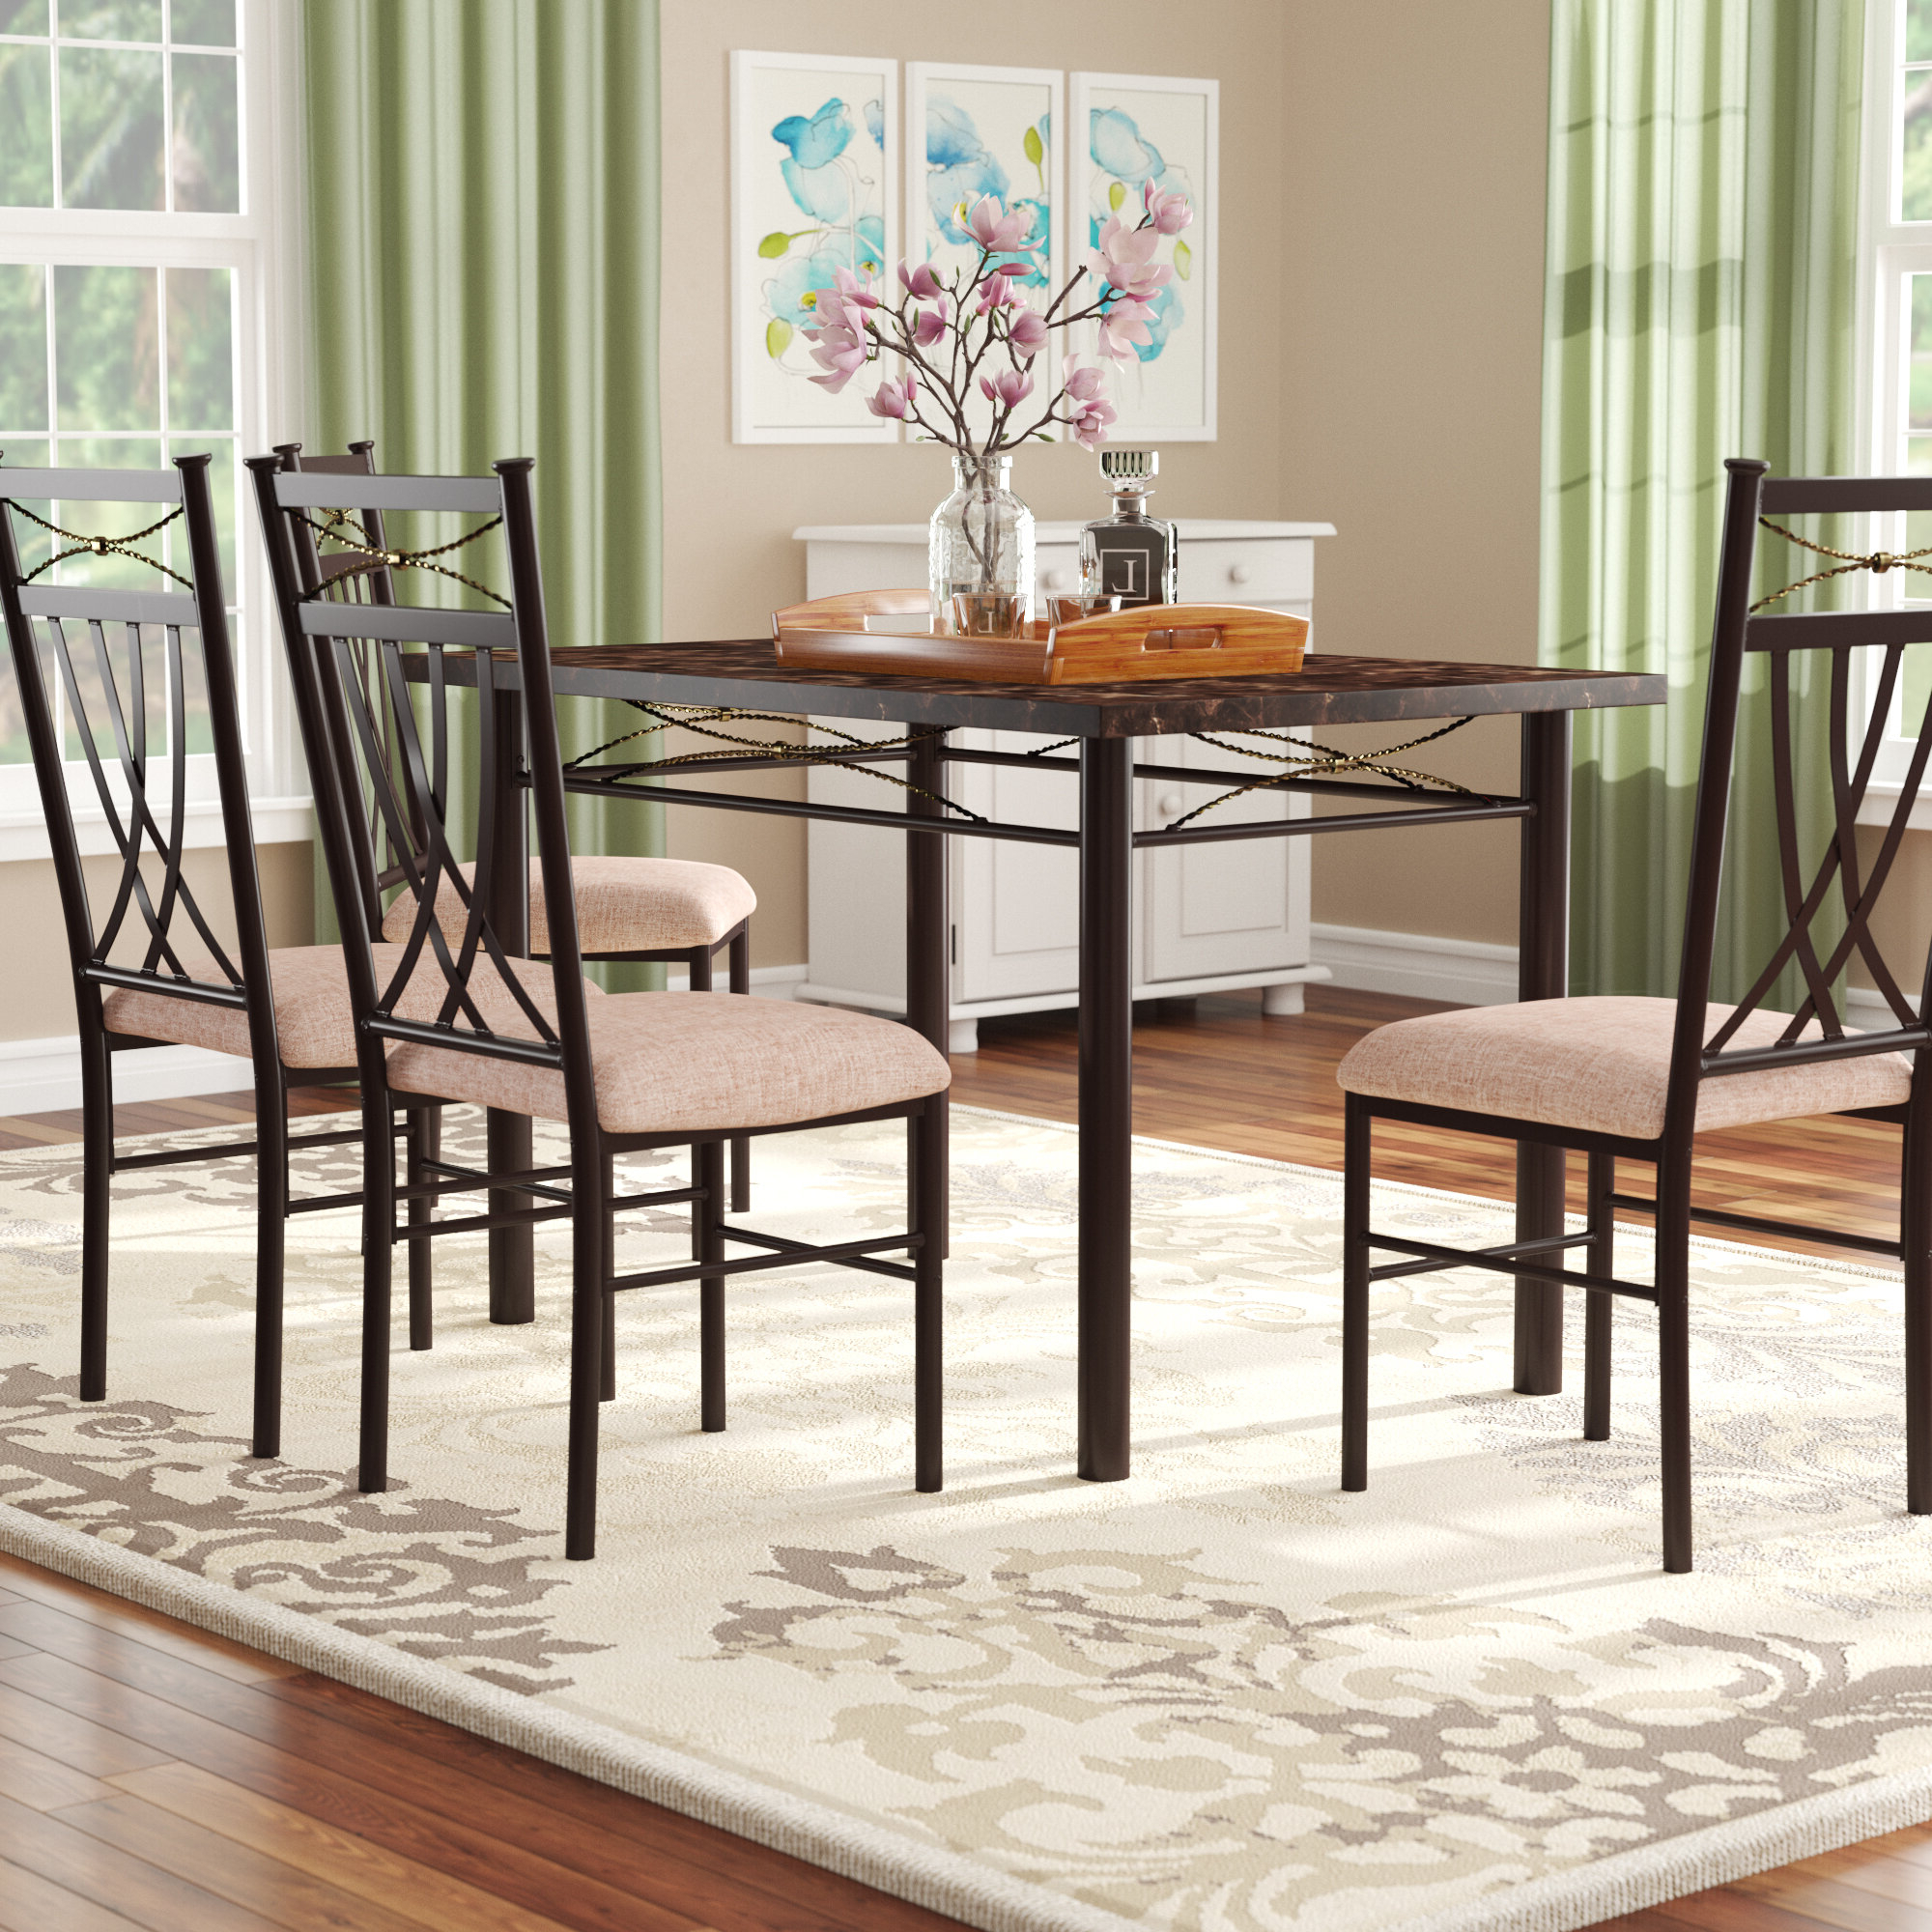 Casiano 5 Piece Dining Sets In Most Recent Red Barrel Studio Branden 5 Piece Dining Set & Reviews (View 5 of 25)